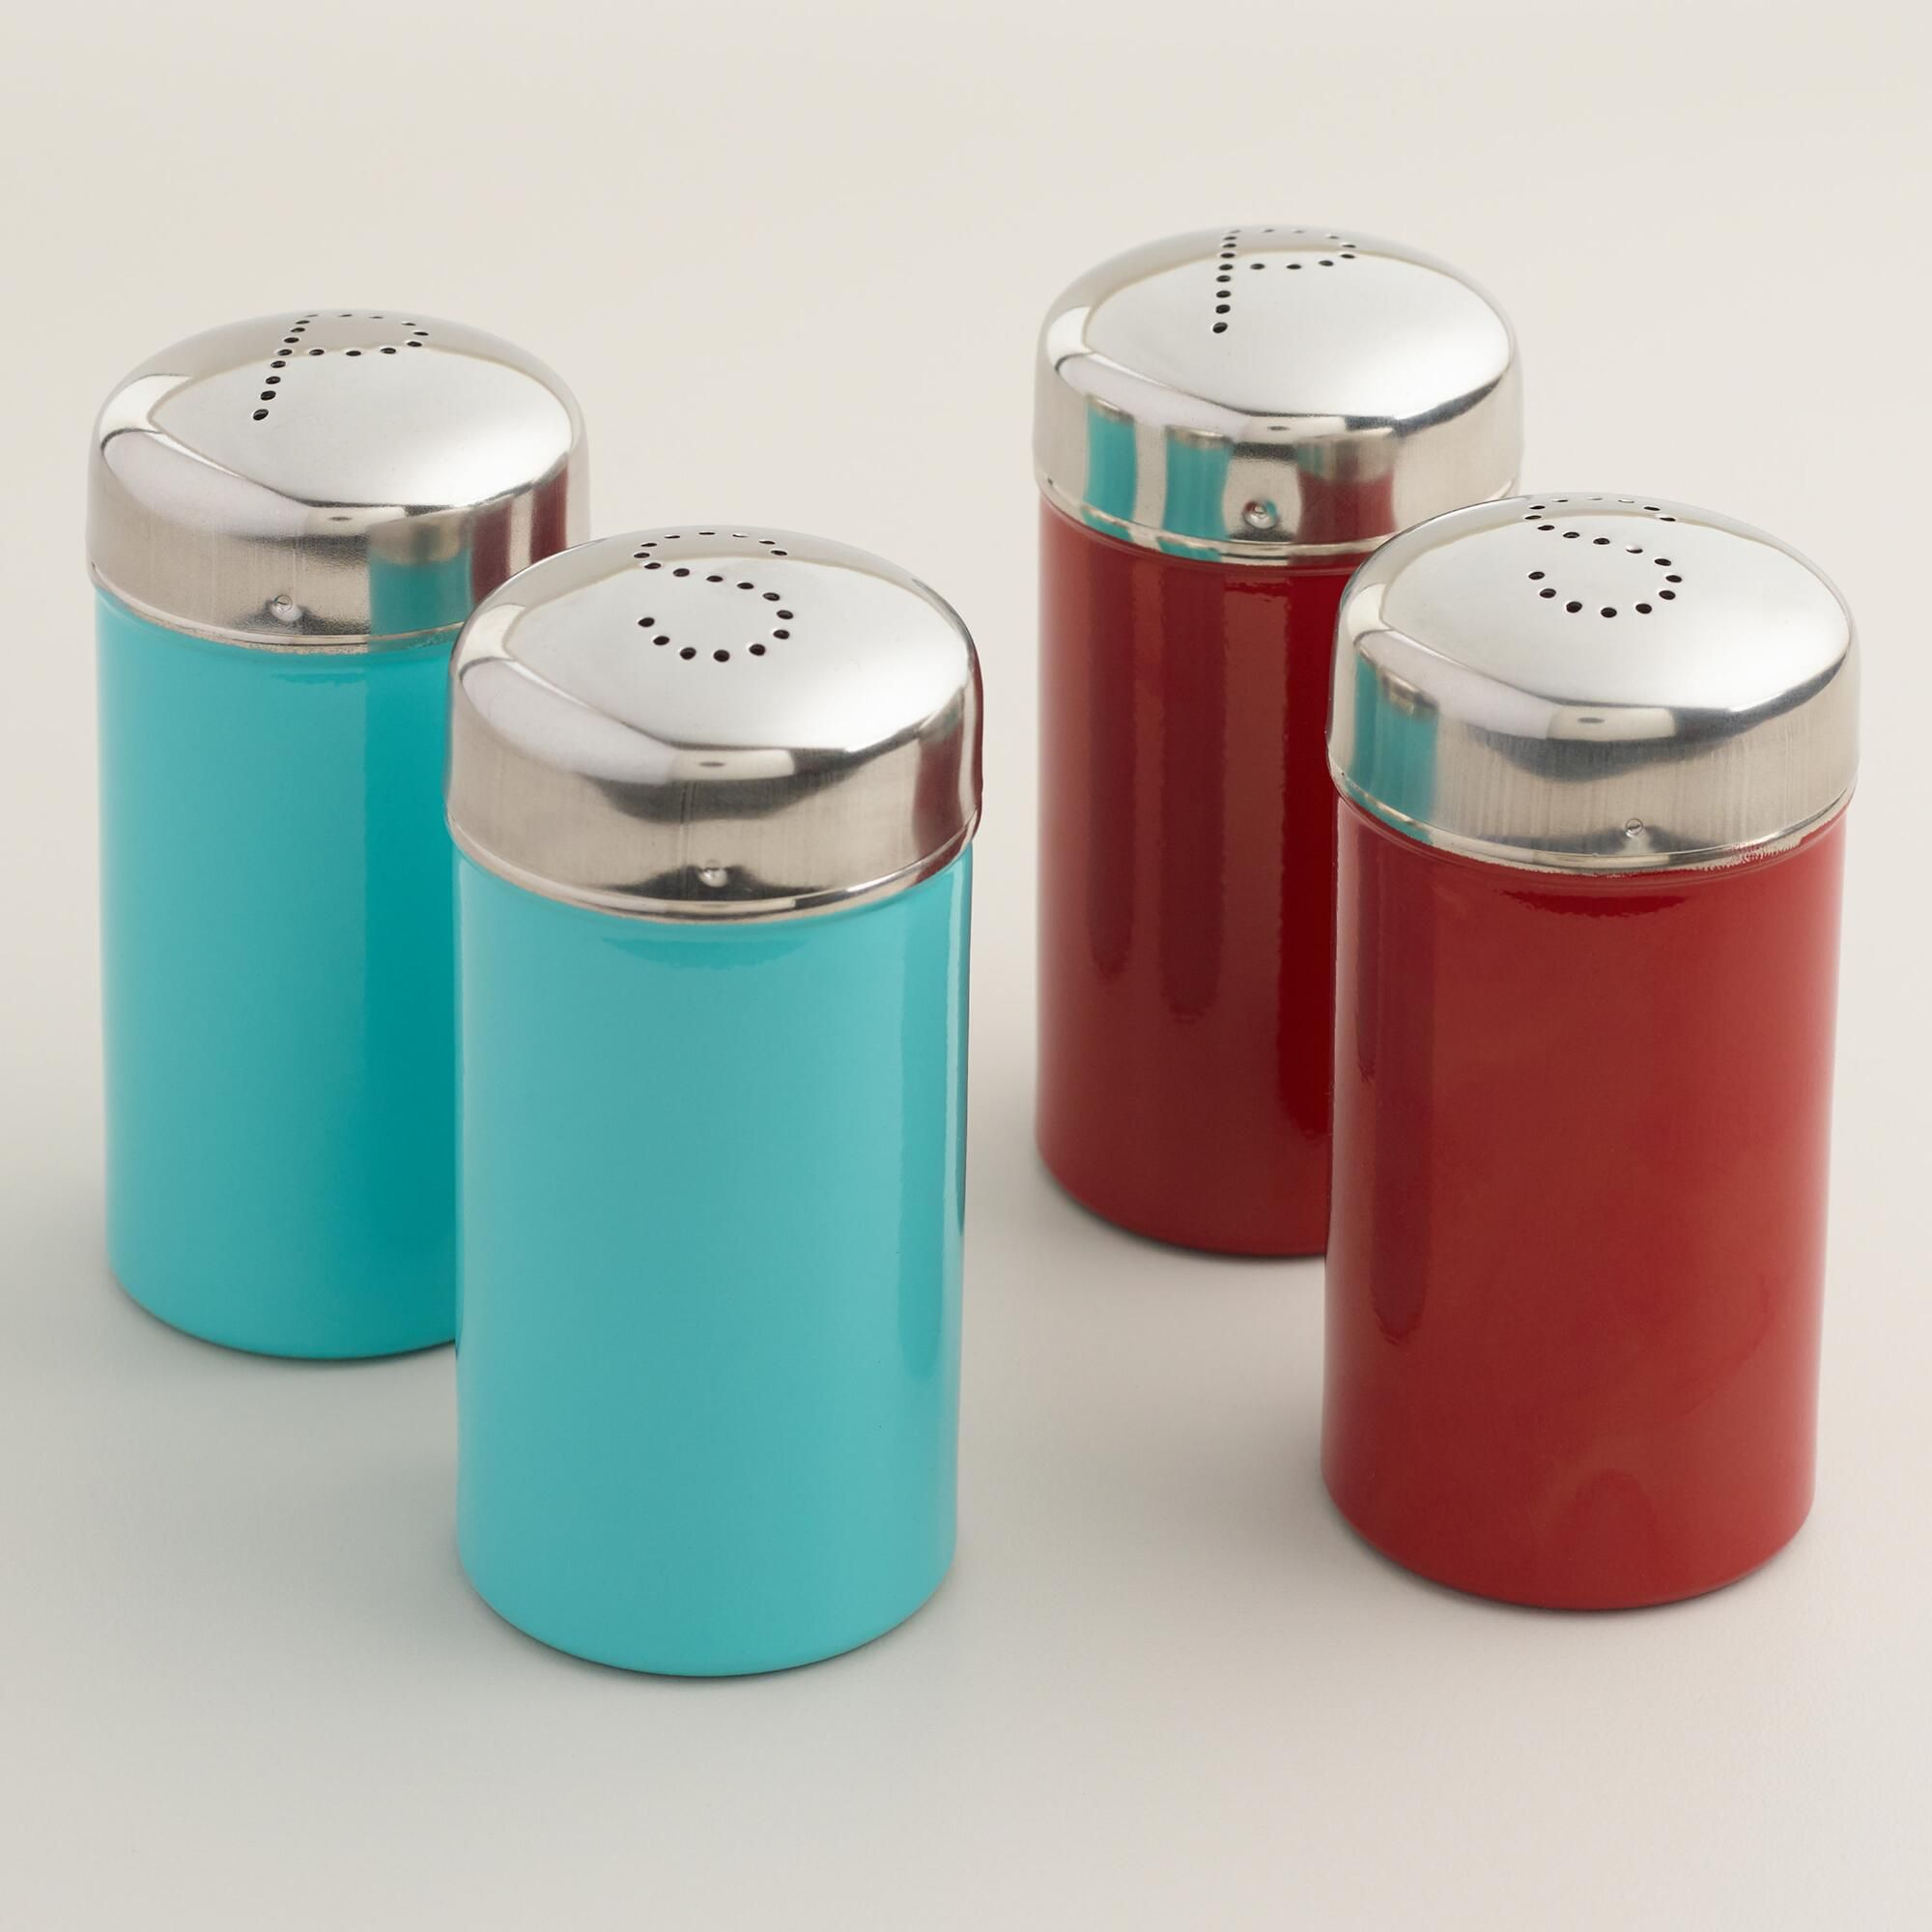 Stainless Steel Salt and Pepper Shakers, Set of 2 | Steel, Kitchens ...